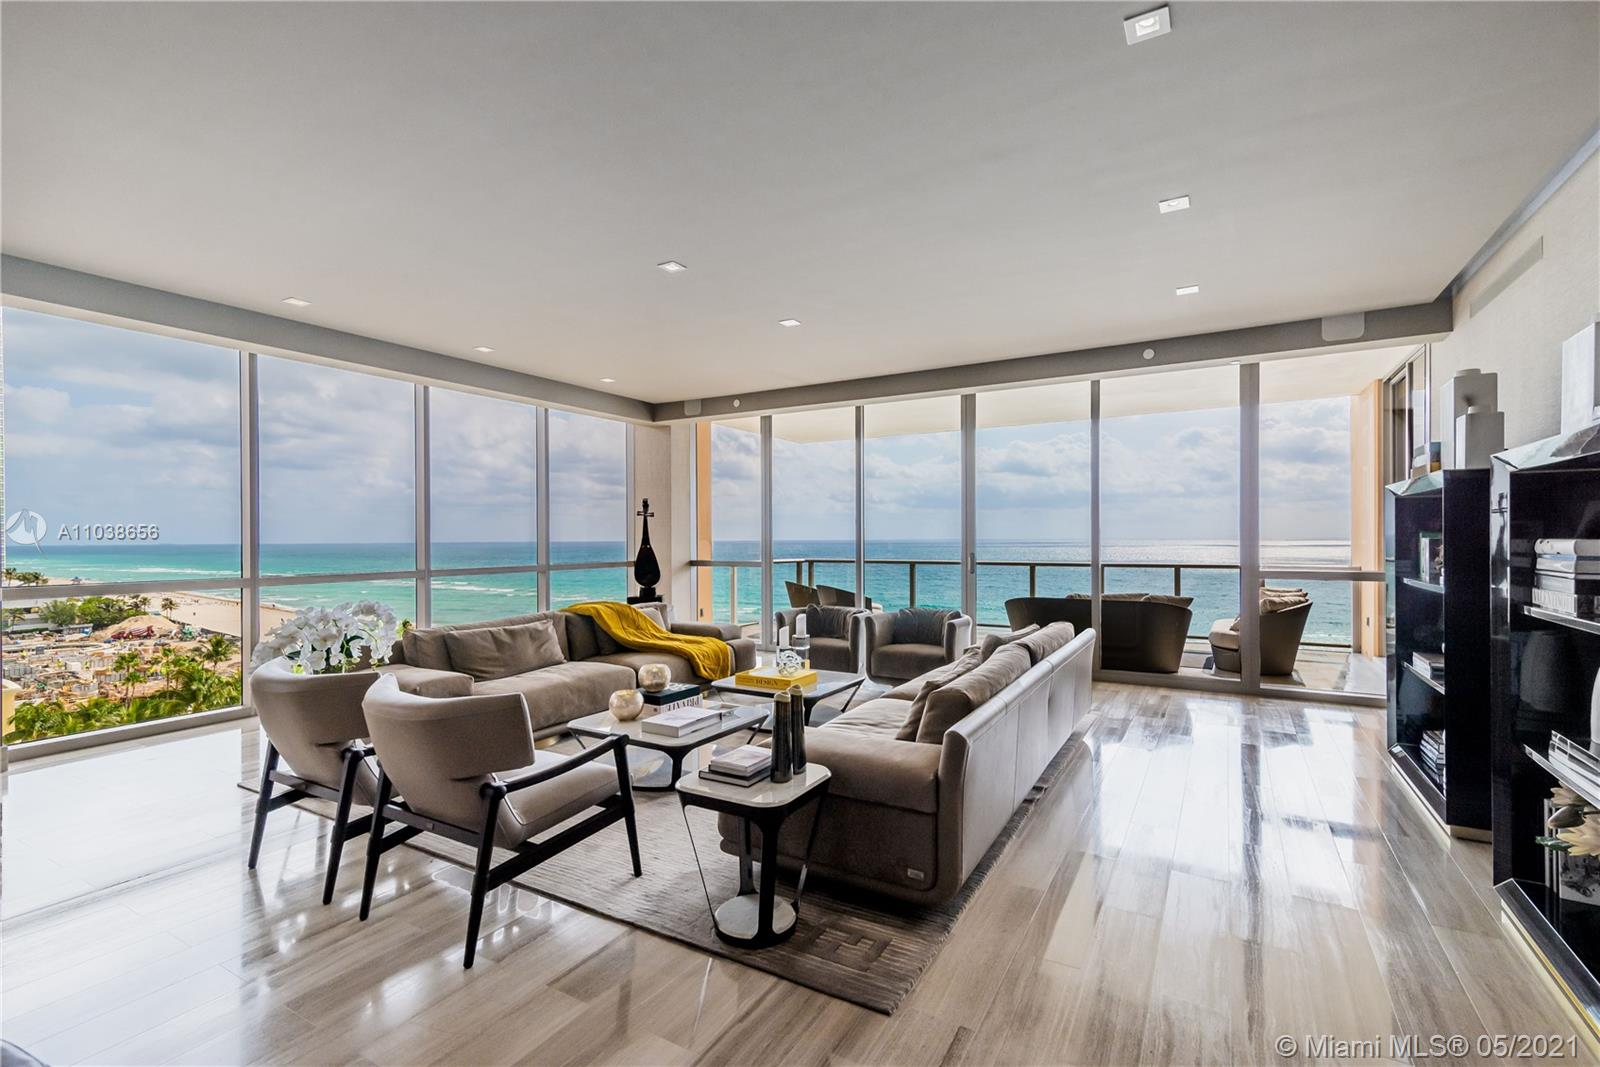 An incredible opportunity to own in the magnificent Mansions at Acqualina and enjoy the five star services at your fingertips. This spectacular beach house is in impeccable condition and the perfect backdrop to the most incredible city and ocean views. It features marble and wood floors through out, a state of the art kitchen with Miele appliances and marble counter tops, his and hers master bathrooms featuring Onyx throughout and custom leather designer closets. This phenomenal residence has over 4, 600 sqft of interior, with large east and west facing balconies featuring a summer kitchen and Jacuzzi. Day and night, enjoy your southern exposure views overlooking the Atlantic Ocean and the Miami skyline.